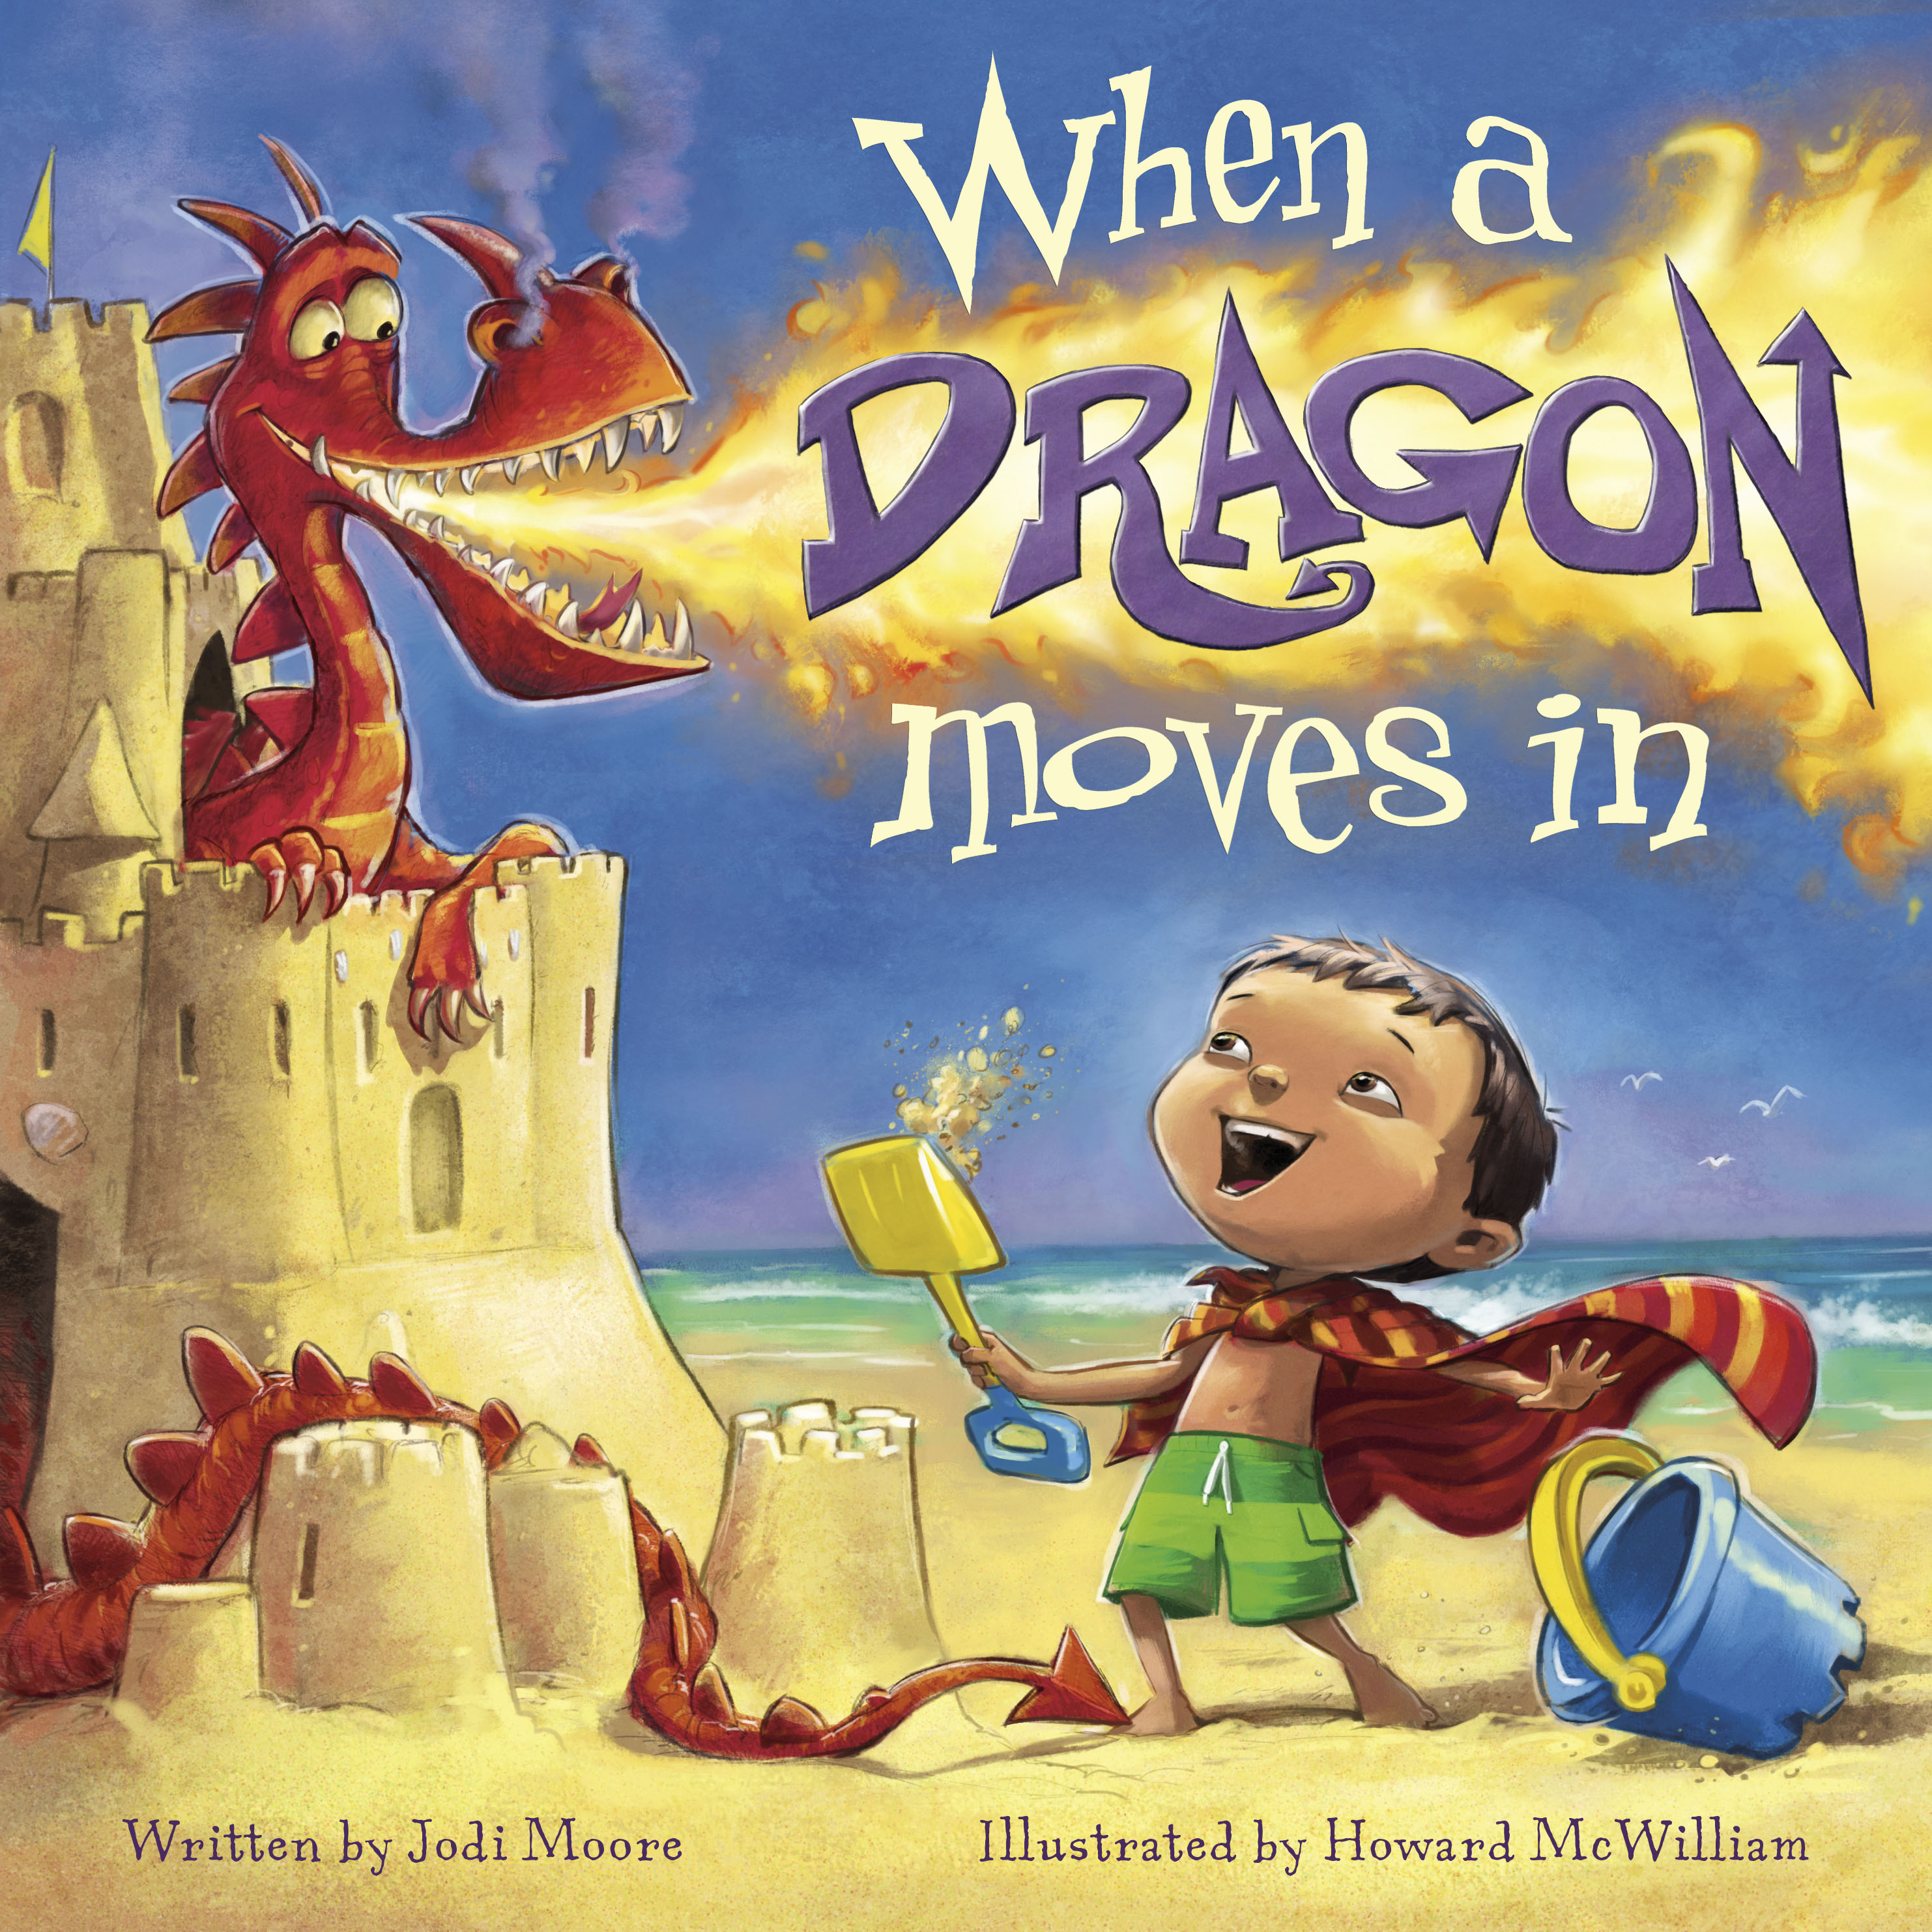 There's a Dragon in Best Kids' Books for Easy Gifting | Flashlight Press